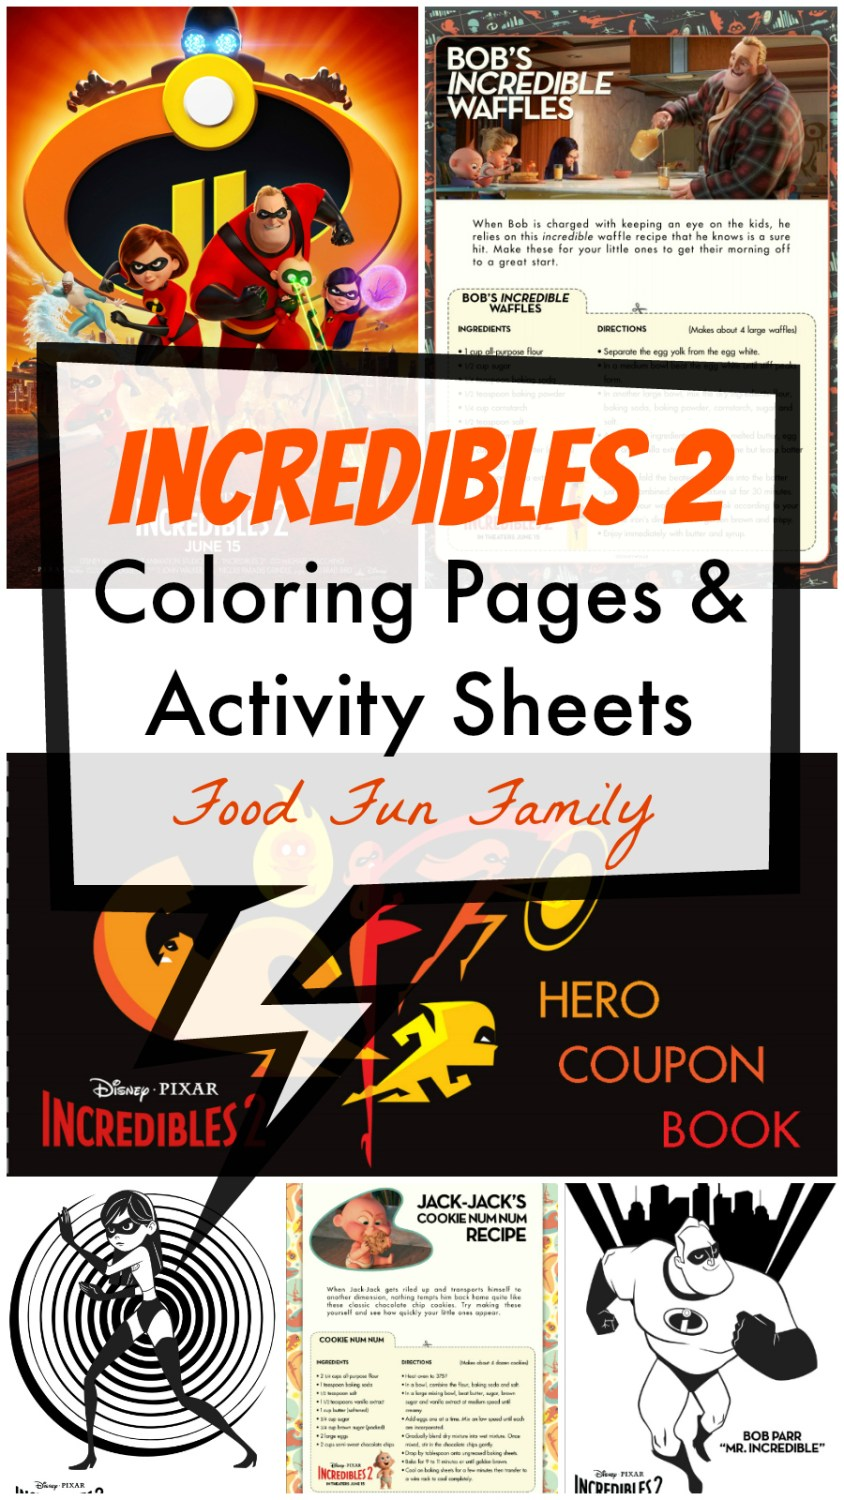 Incredibles 2 Coloring Pages Activity Sheets